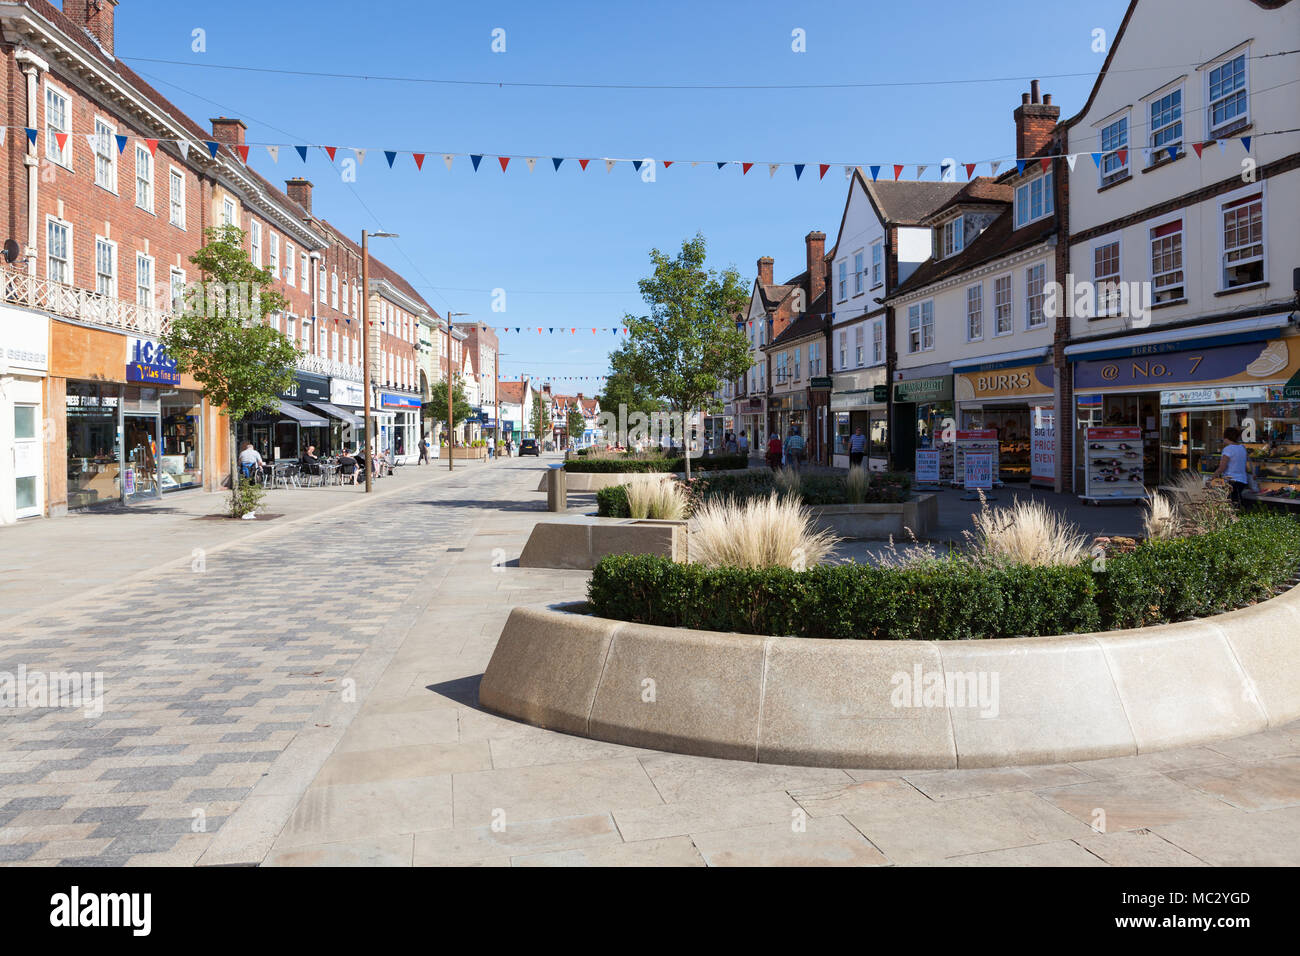 Leys Avenue With Street Furniture In Letchworth Garden City Hertfordshire Stock Photo Alamy